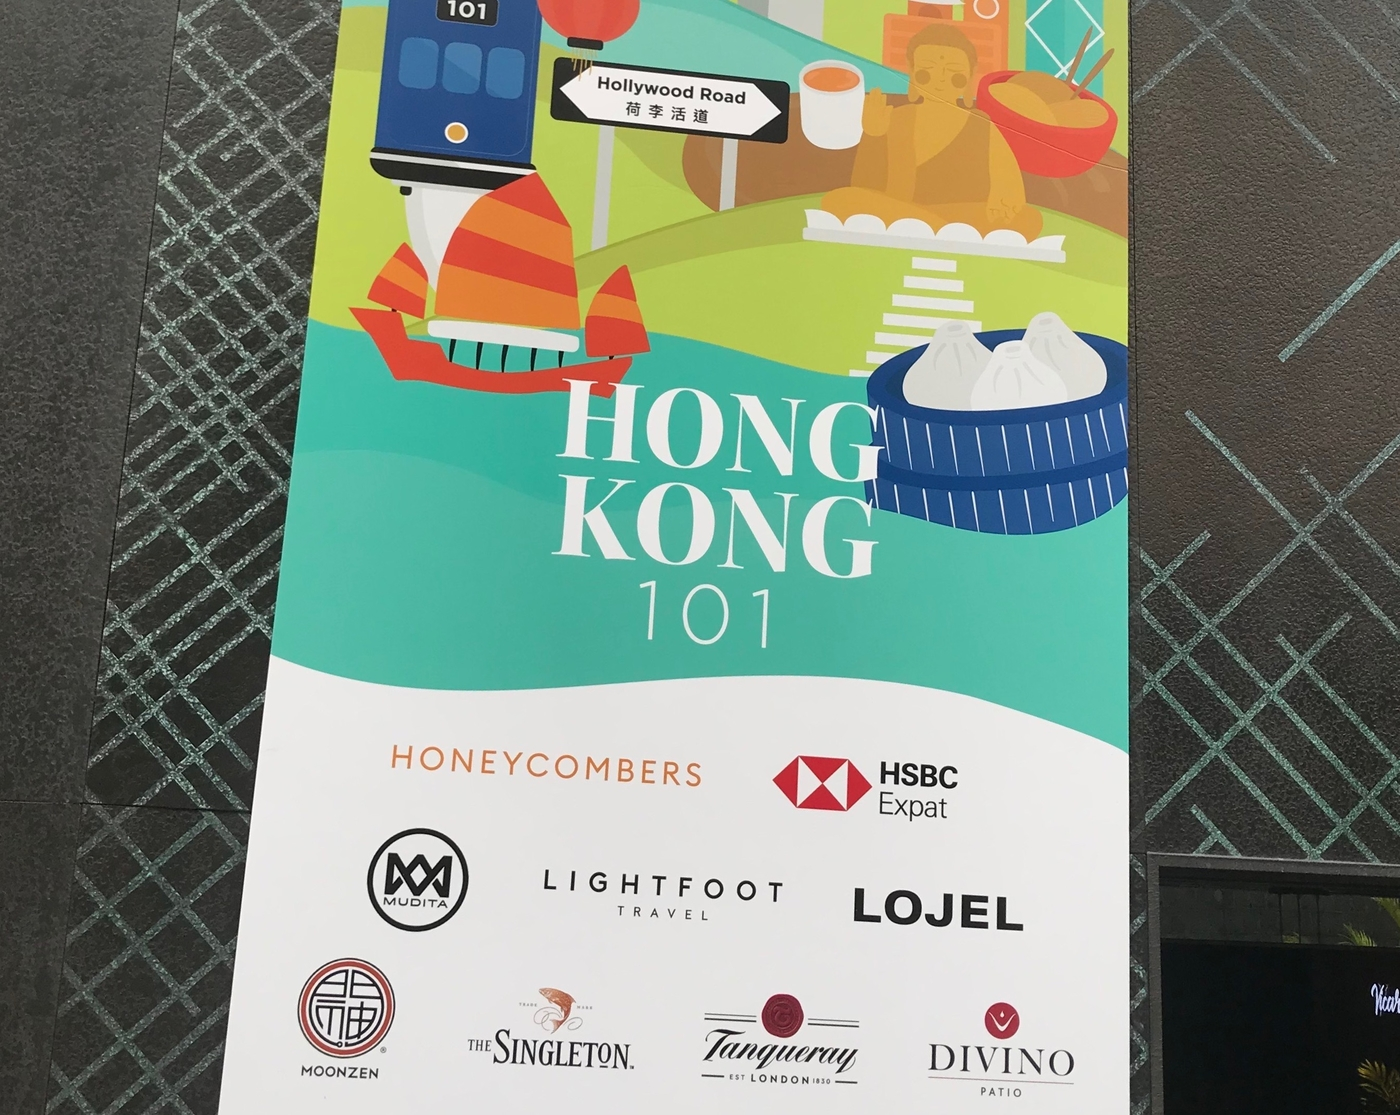 Hong Kong 101 event sign